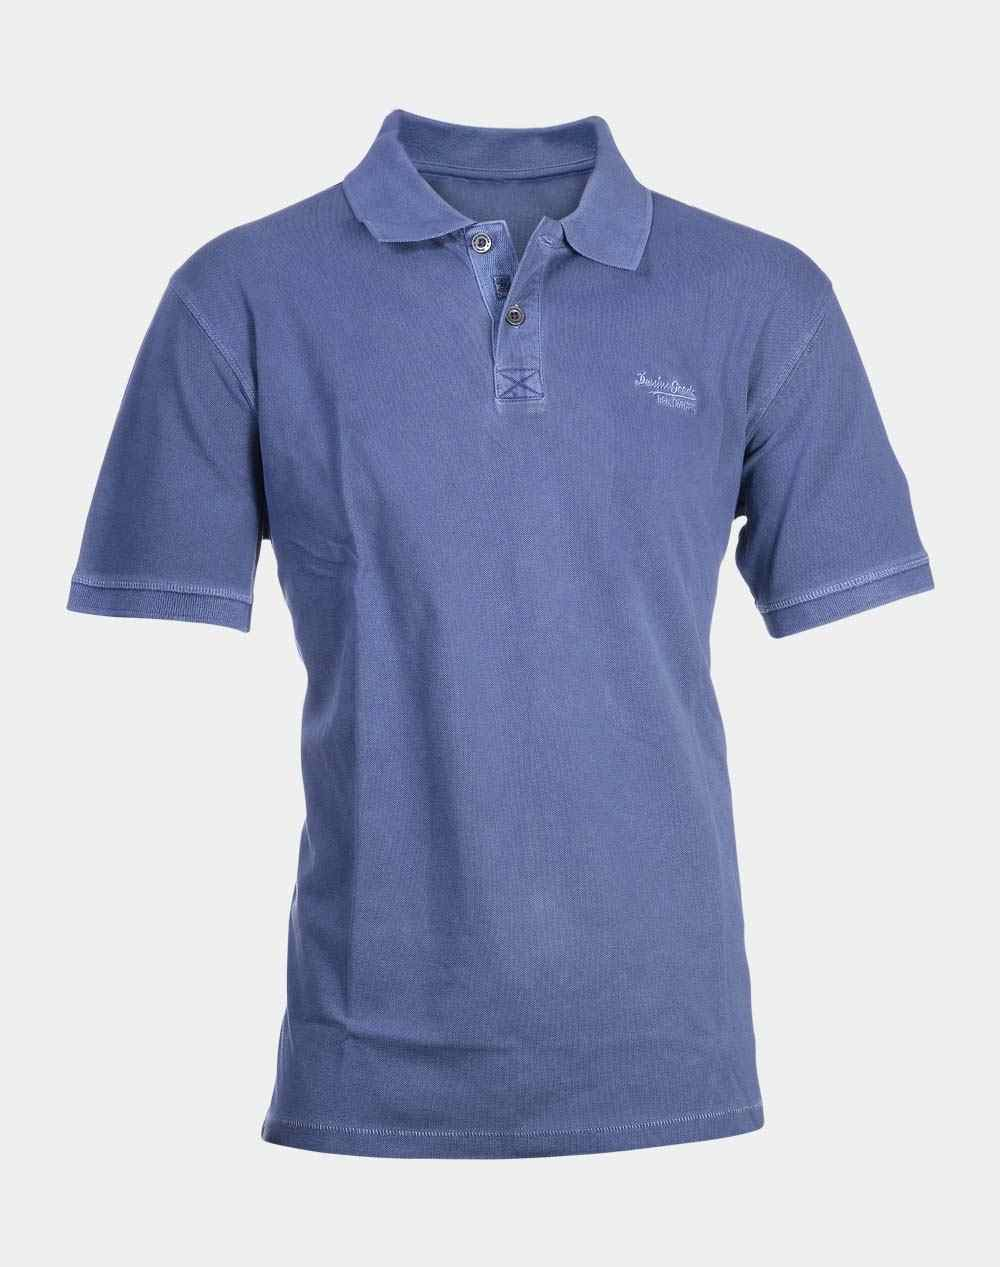 14fe52ee1 T-shirts Manufacturers | Supplier, Exporter, Factory, Polo shirts ...